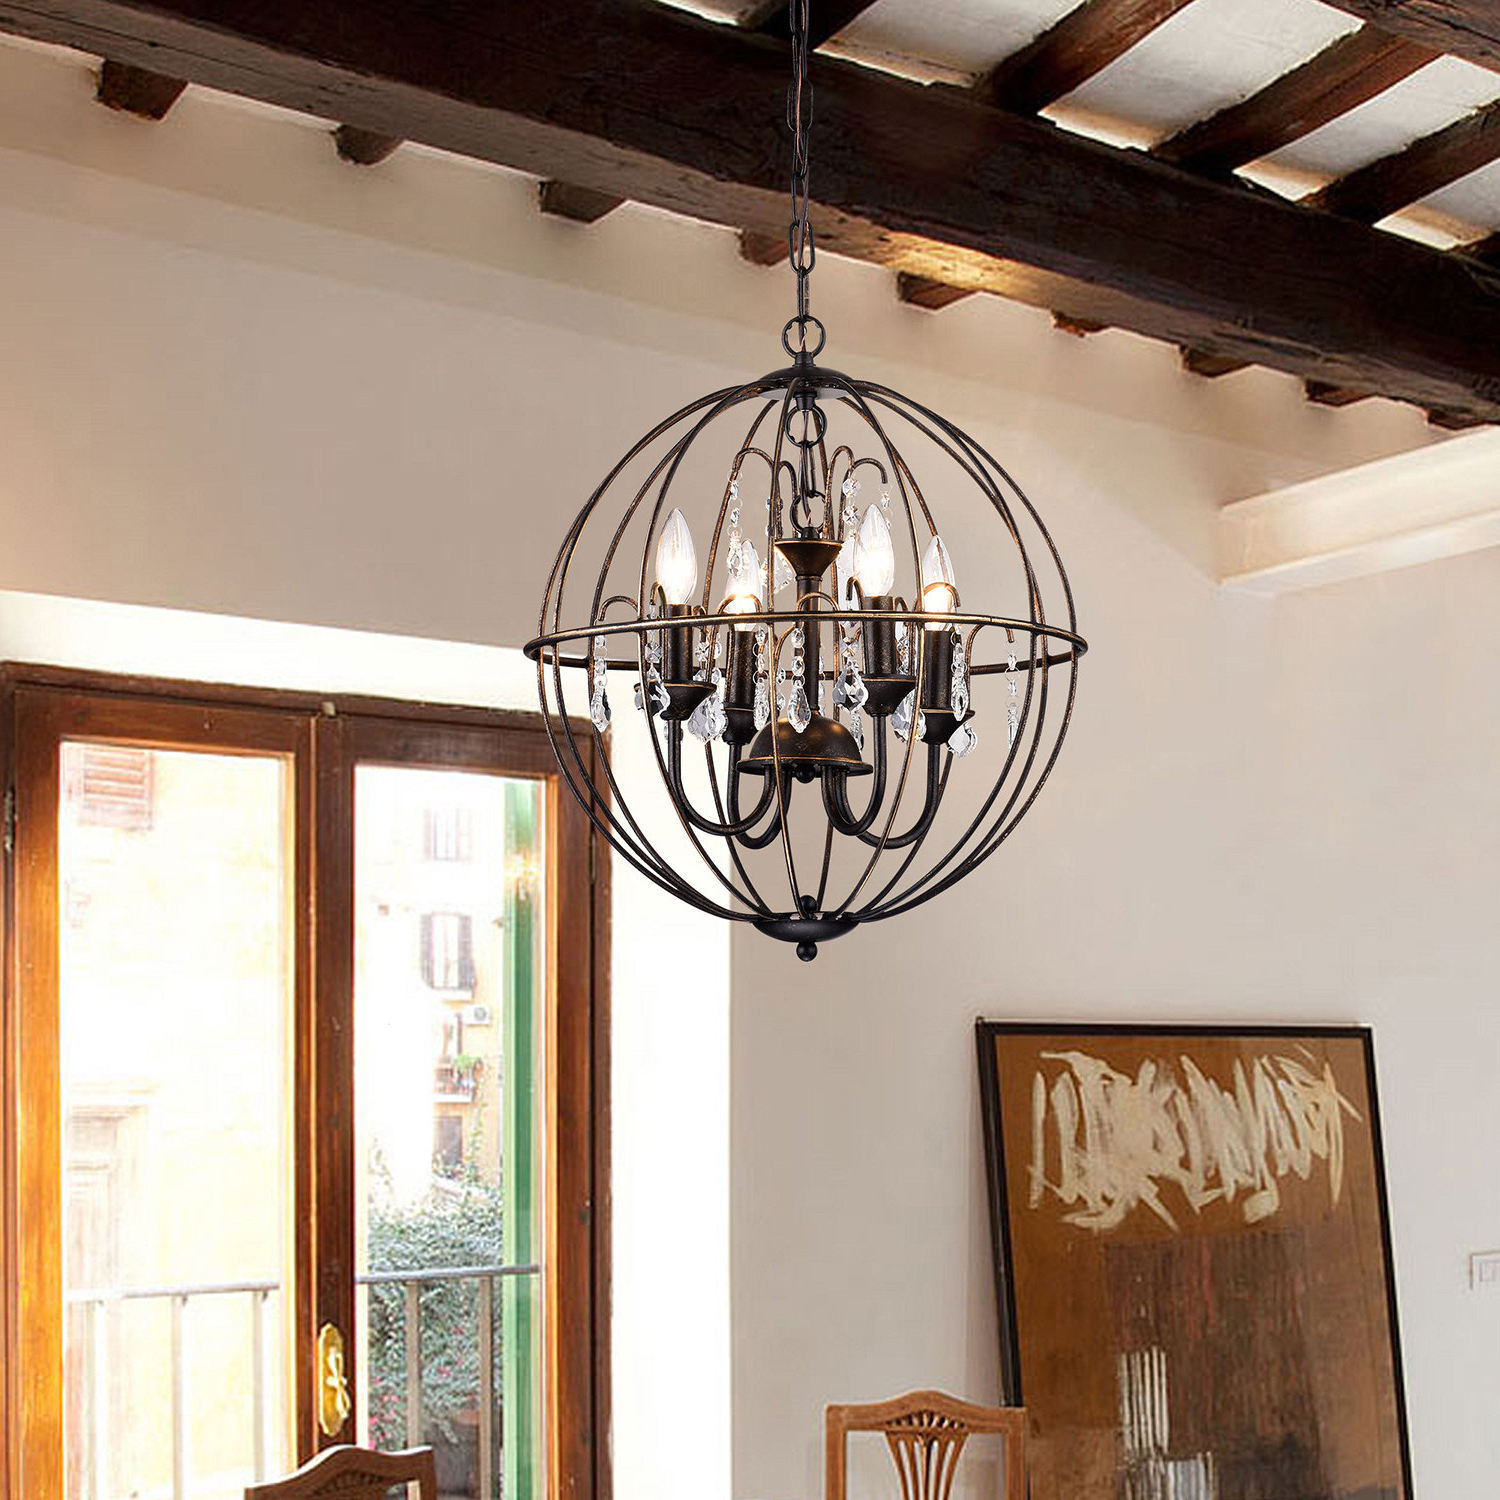 Leung 4 Light Chandelier Intended For Recent Kierra 4 Light Unique / Statement Chandeliers (View 16 of 25)